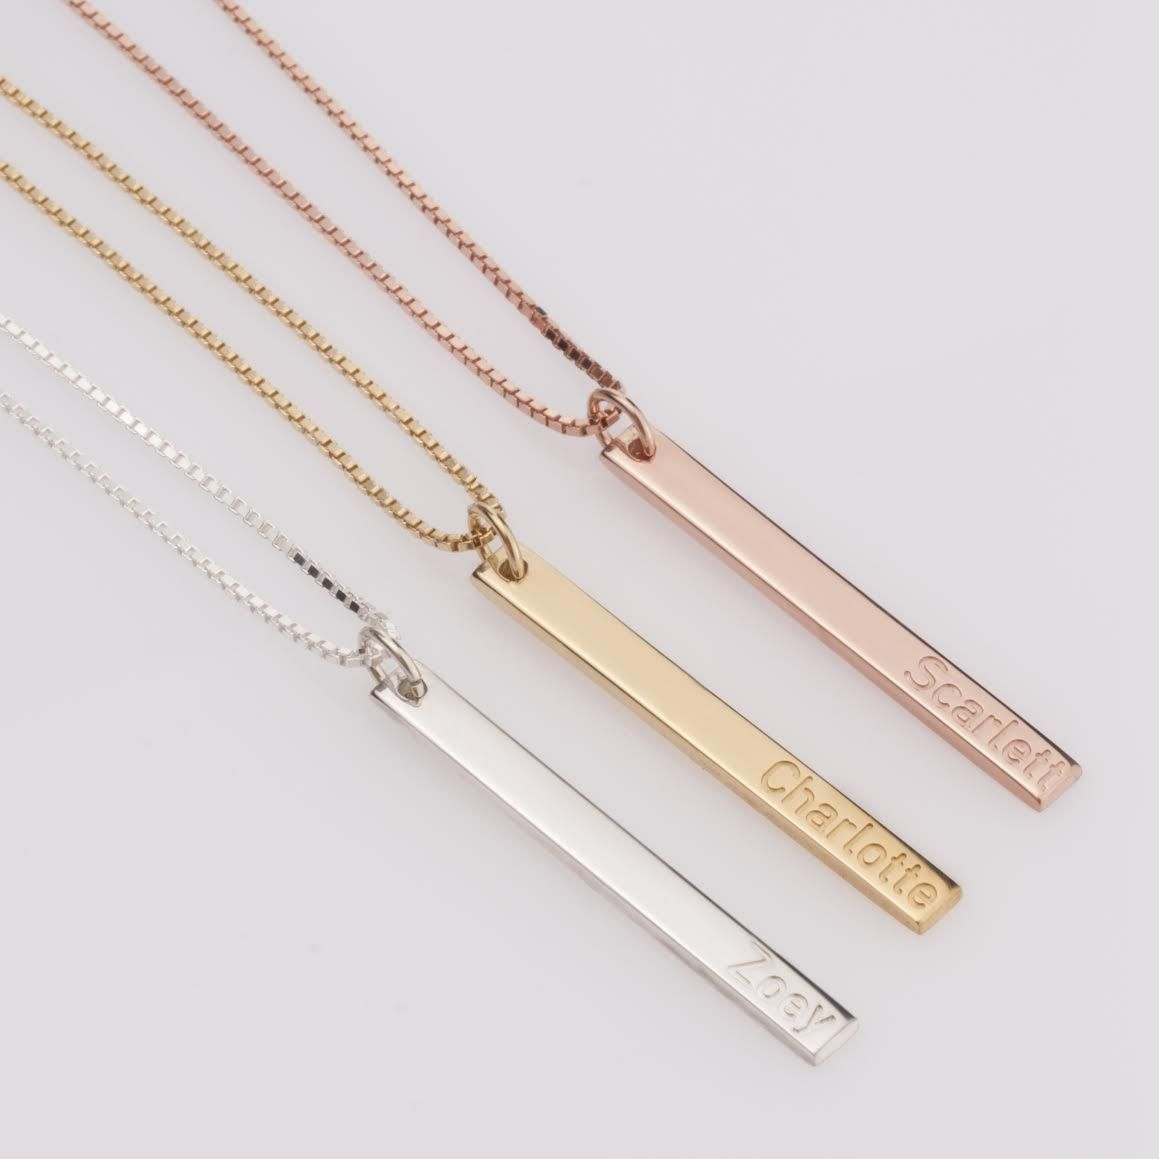 Shop oNecklace for Personalized Jewelry you will cherish forever. Shop Favorites include Name & Monogram Necklaces - making them perfect bridal party gifts.